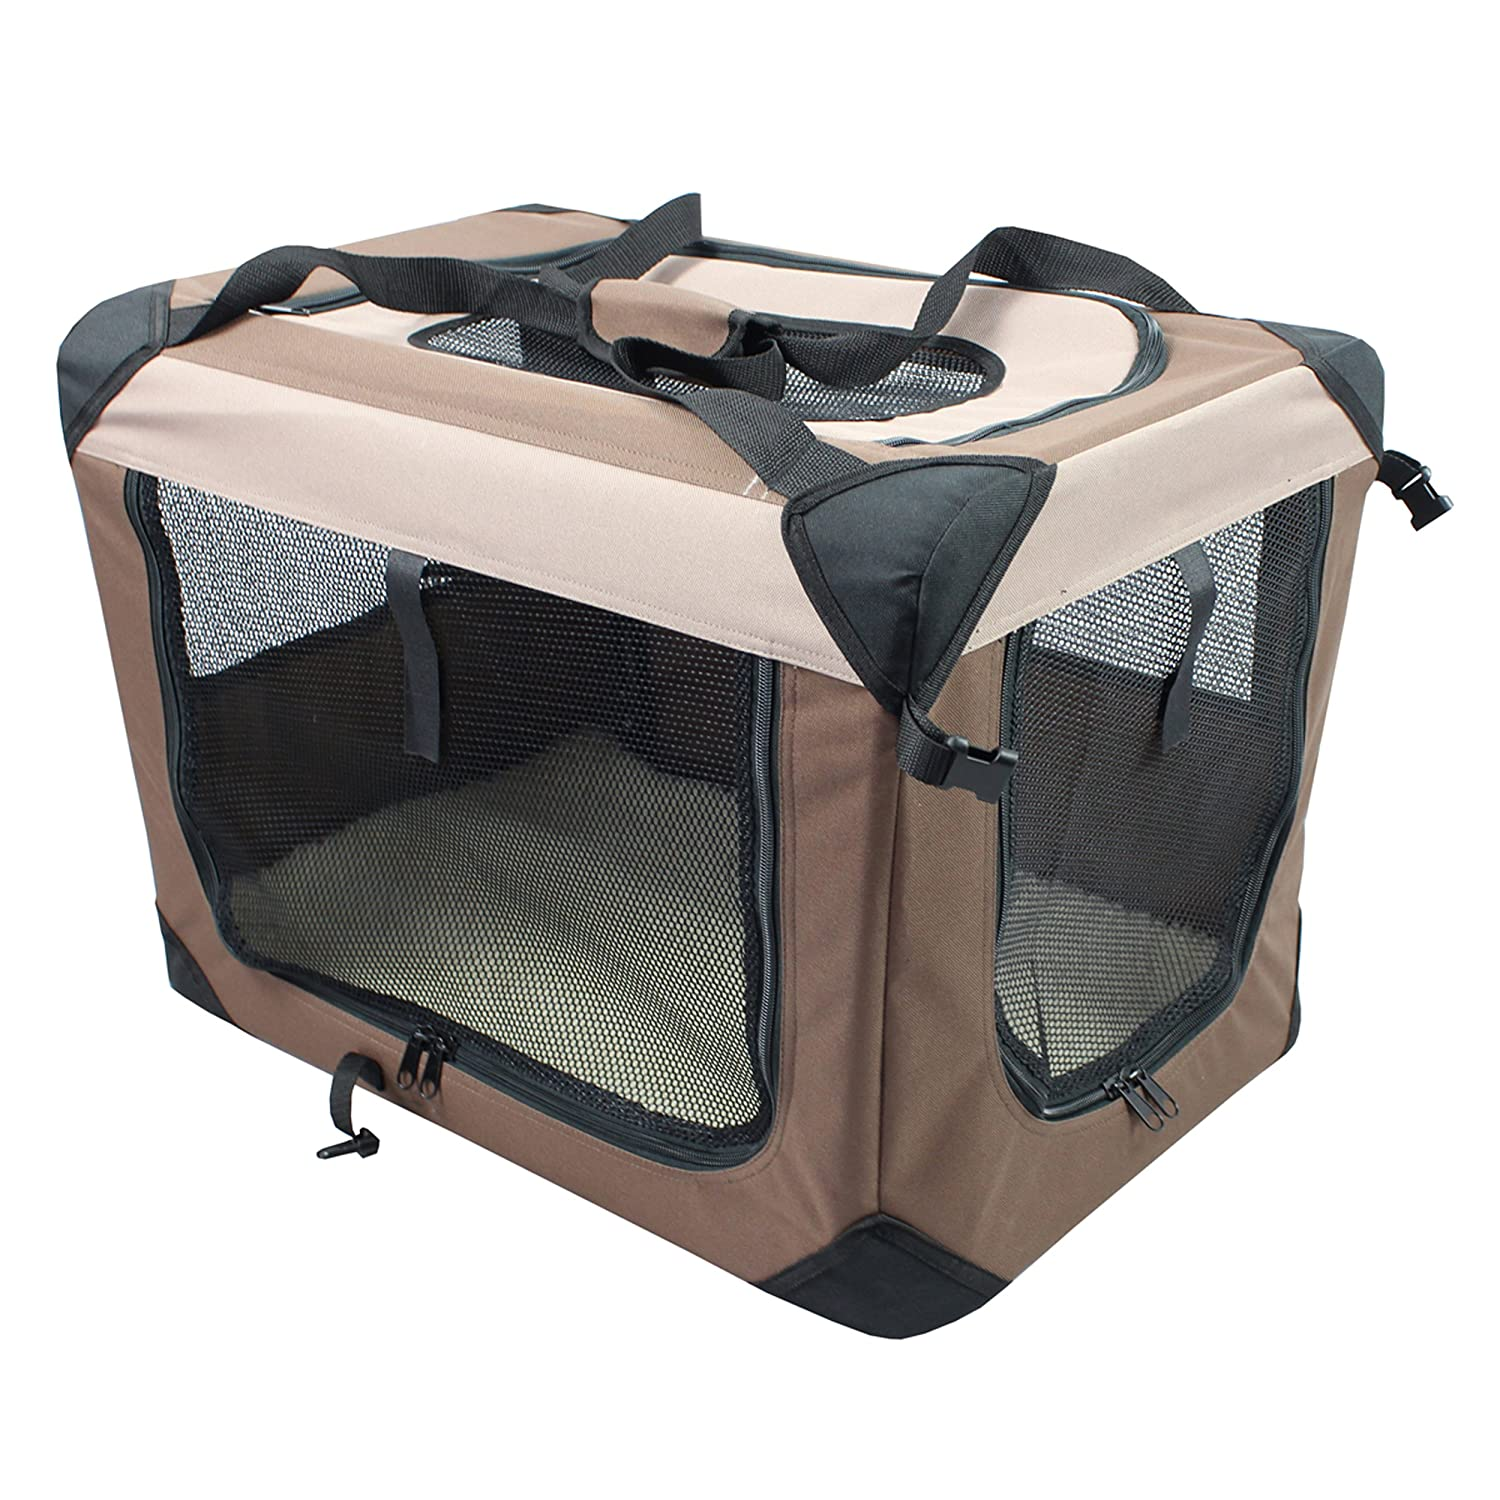 Iconic Pet Multipurpose Pet Soft Crate with Fleece Mat - Coffee/Khaki - Large 51593